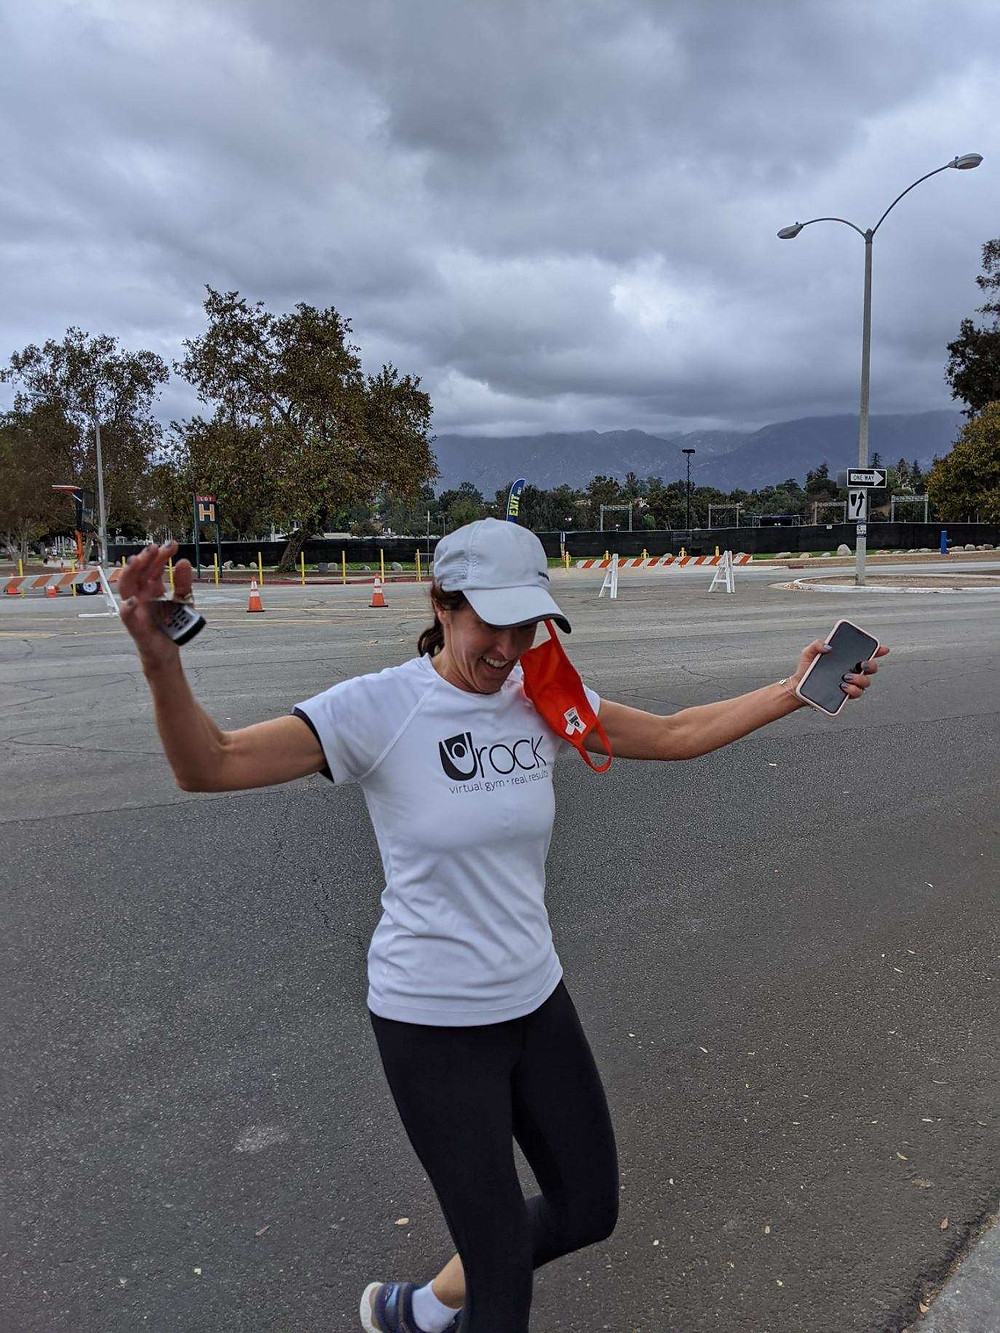 Stacey Sharp femal founder of Urock Fit Zoom gym at the finish line of her Urock style Tri.